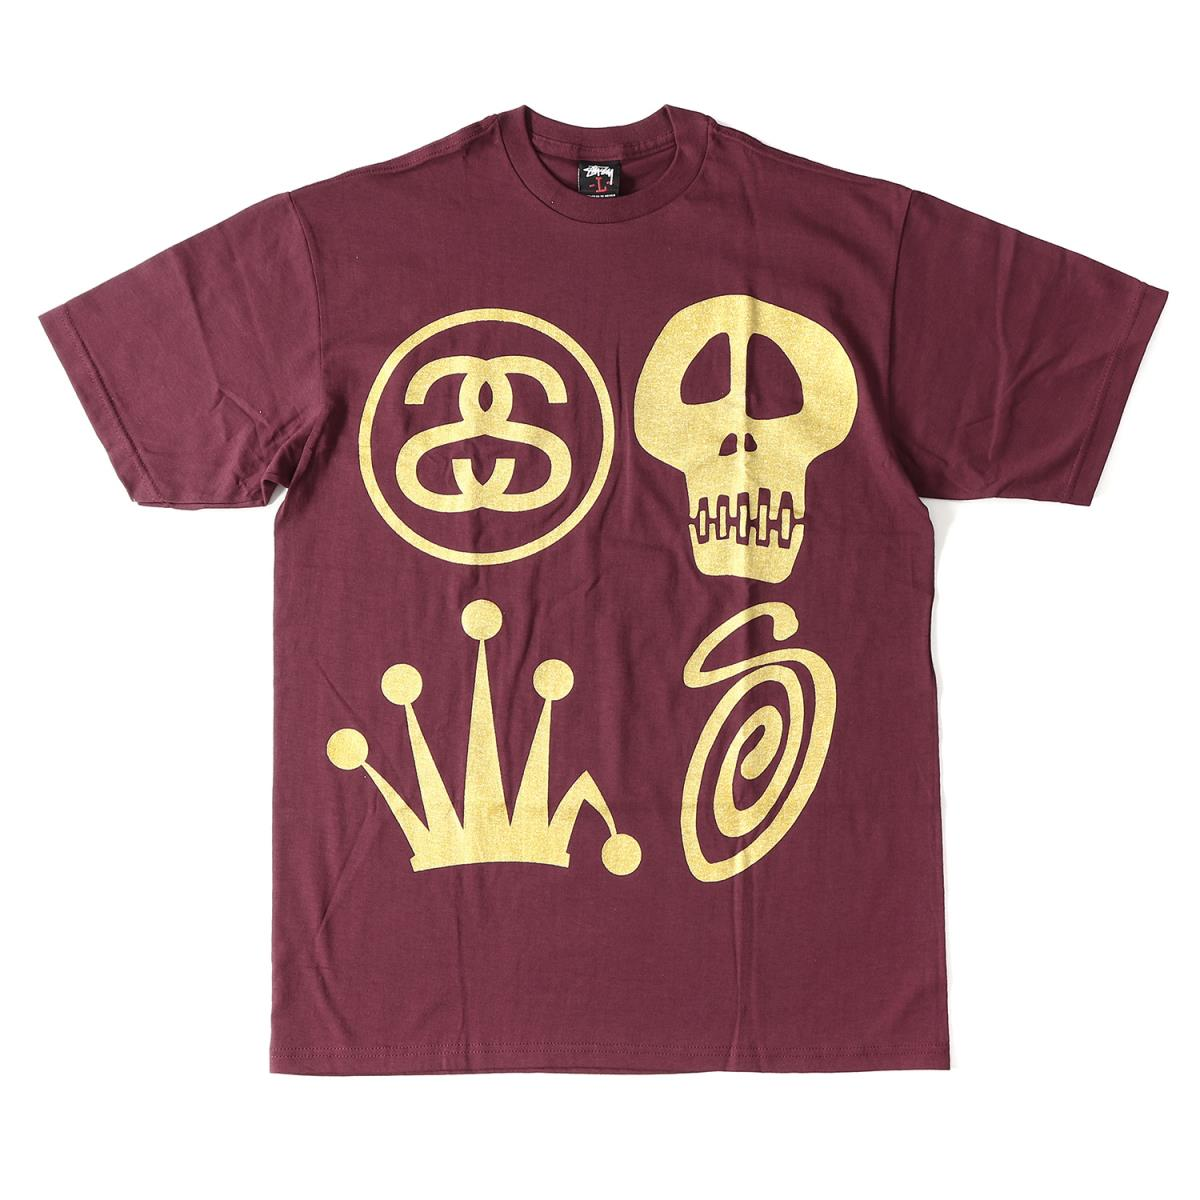 BEEGLE by Boo-Bee  STUSSY (ステューシー) gold icon T-shirt burgundy ... 04aa8a52a